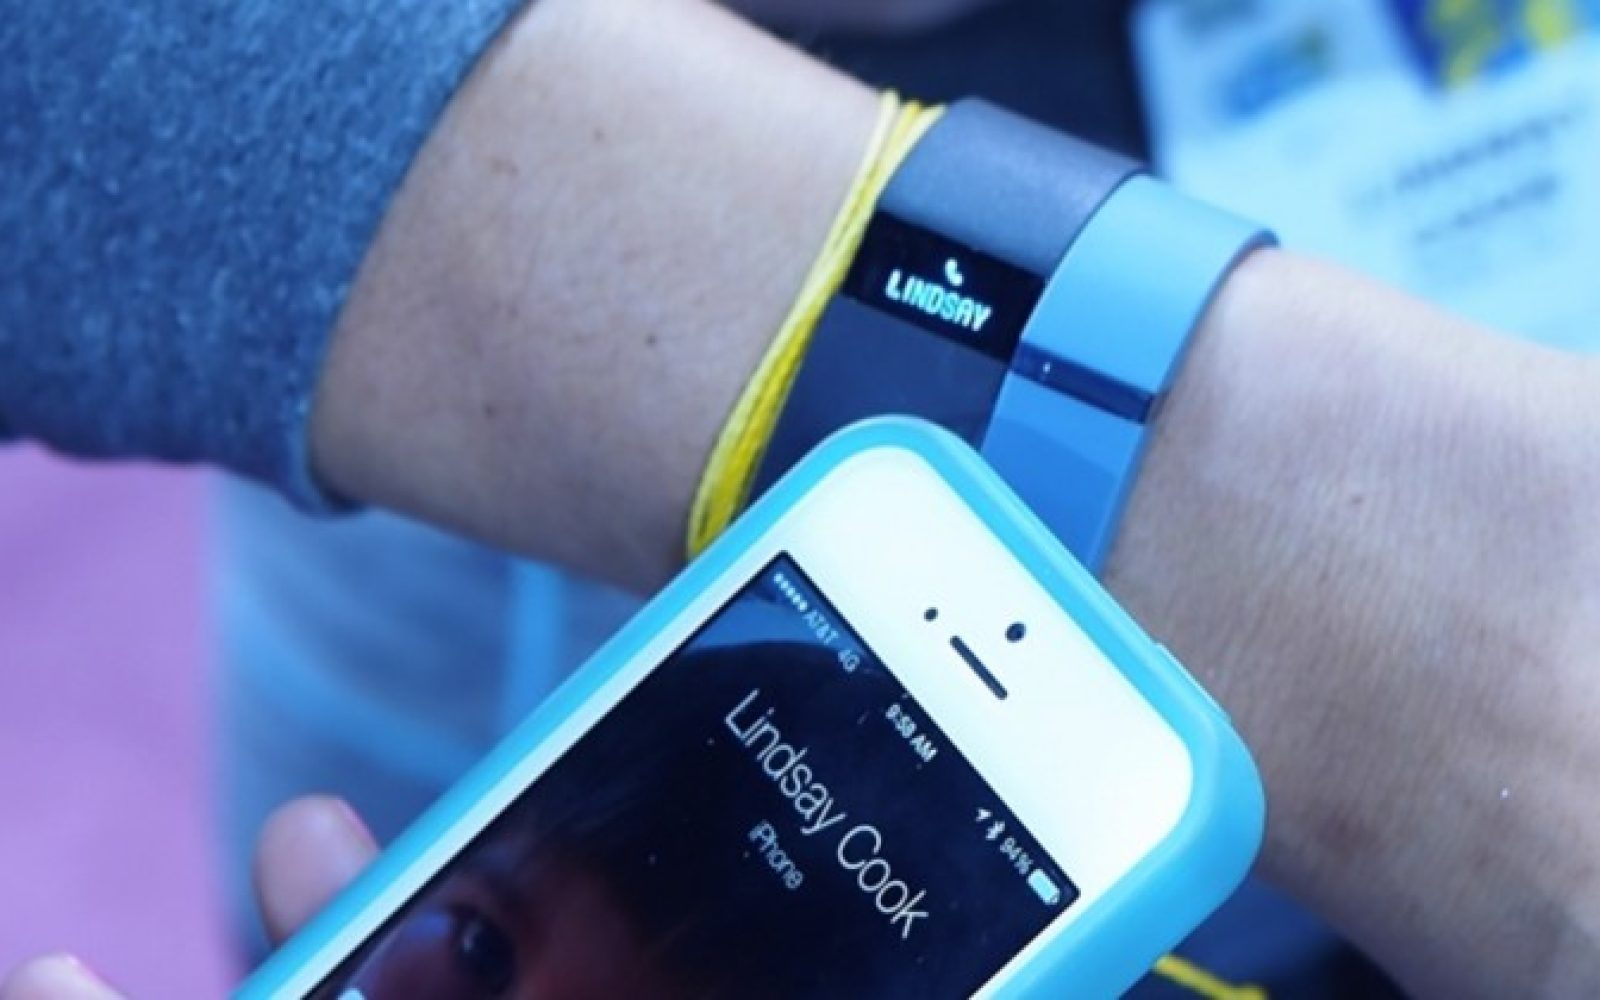 Fitbit issues recall of Force fitness tracker and stops sales over